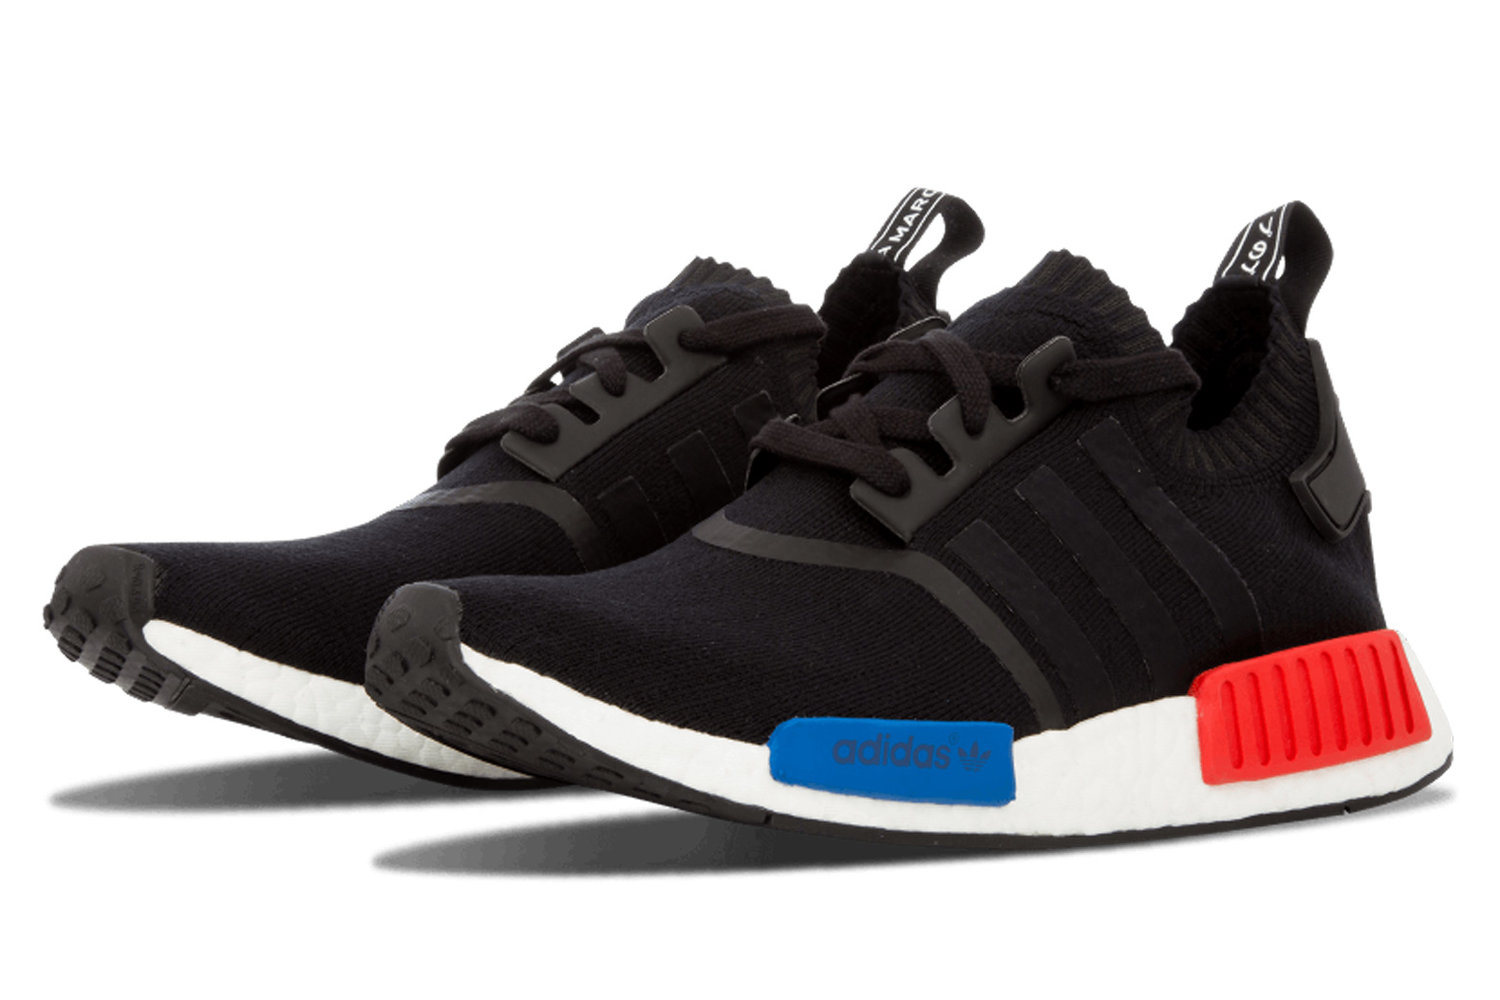 Nmd r1 pk 'NMD OG 2017' black / white / blue / red